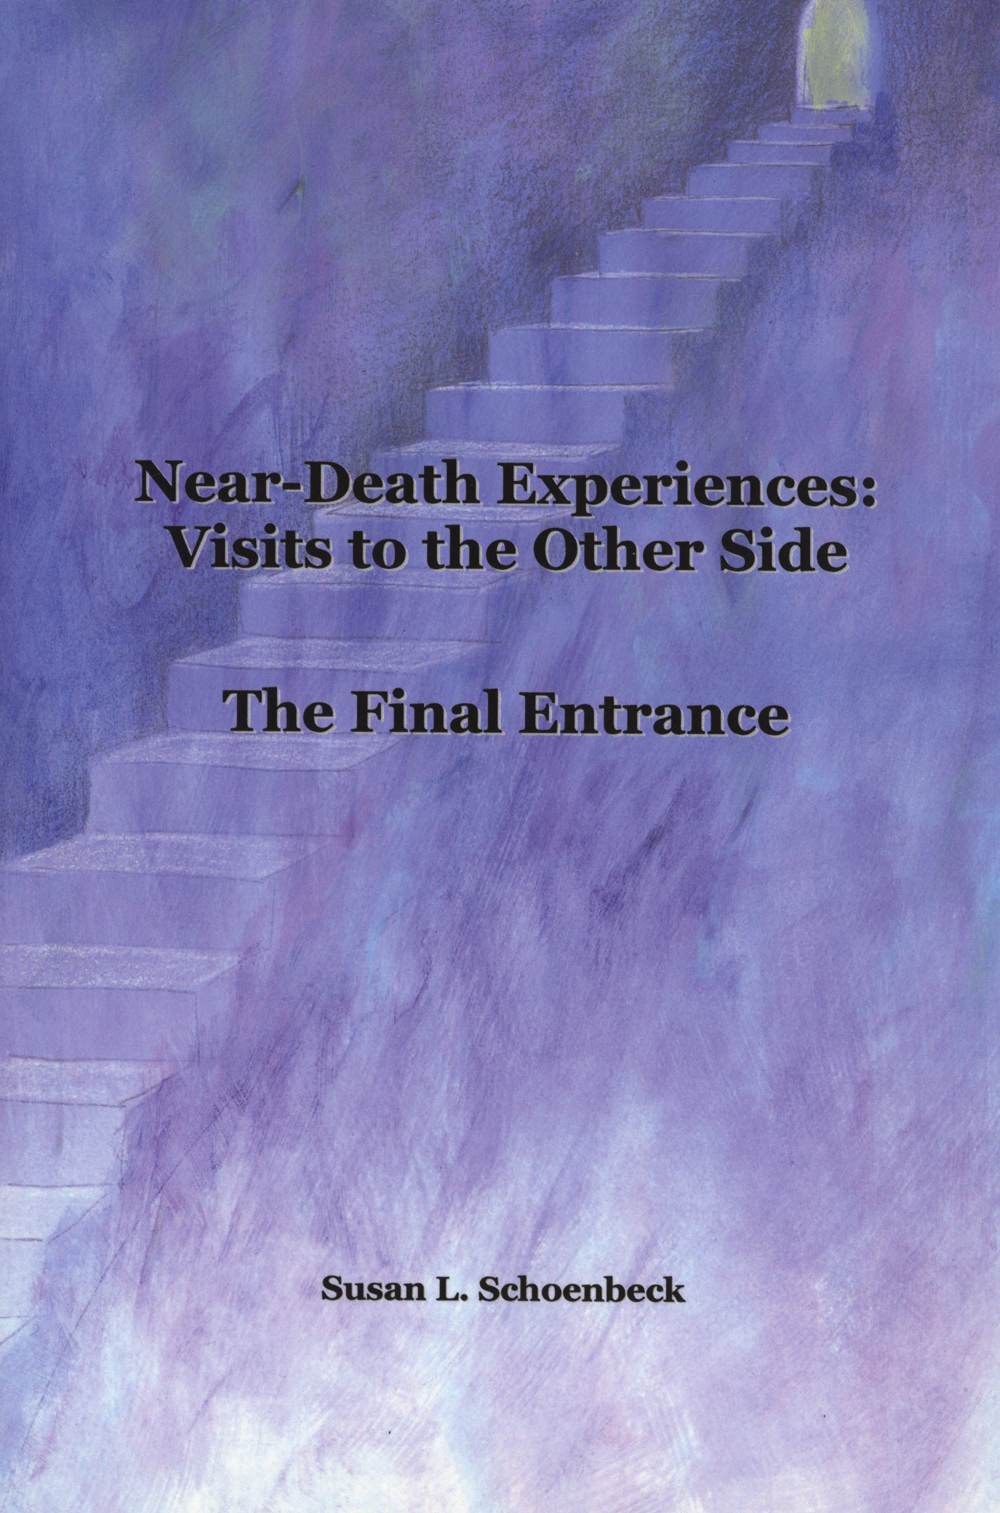 Near-Death Experiences: Visits to the Other Size